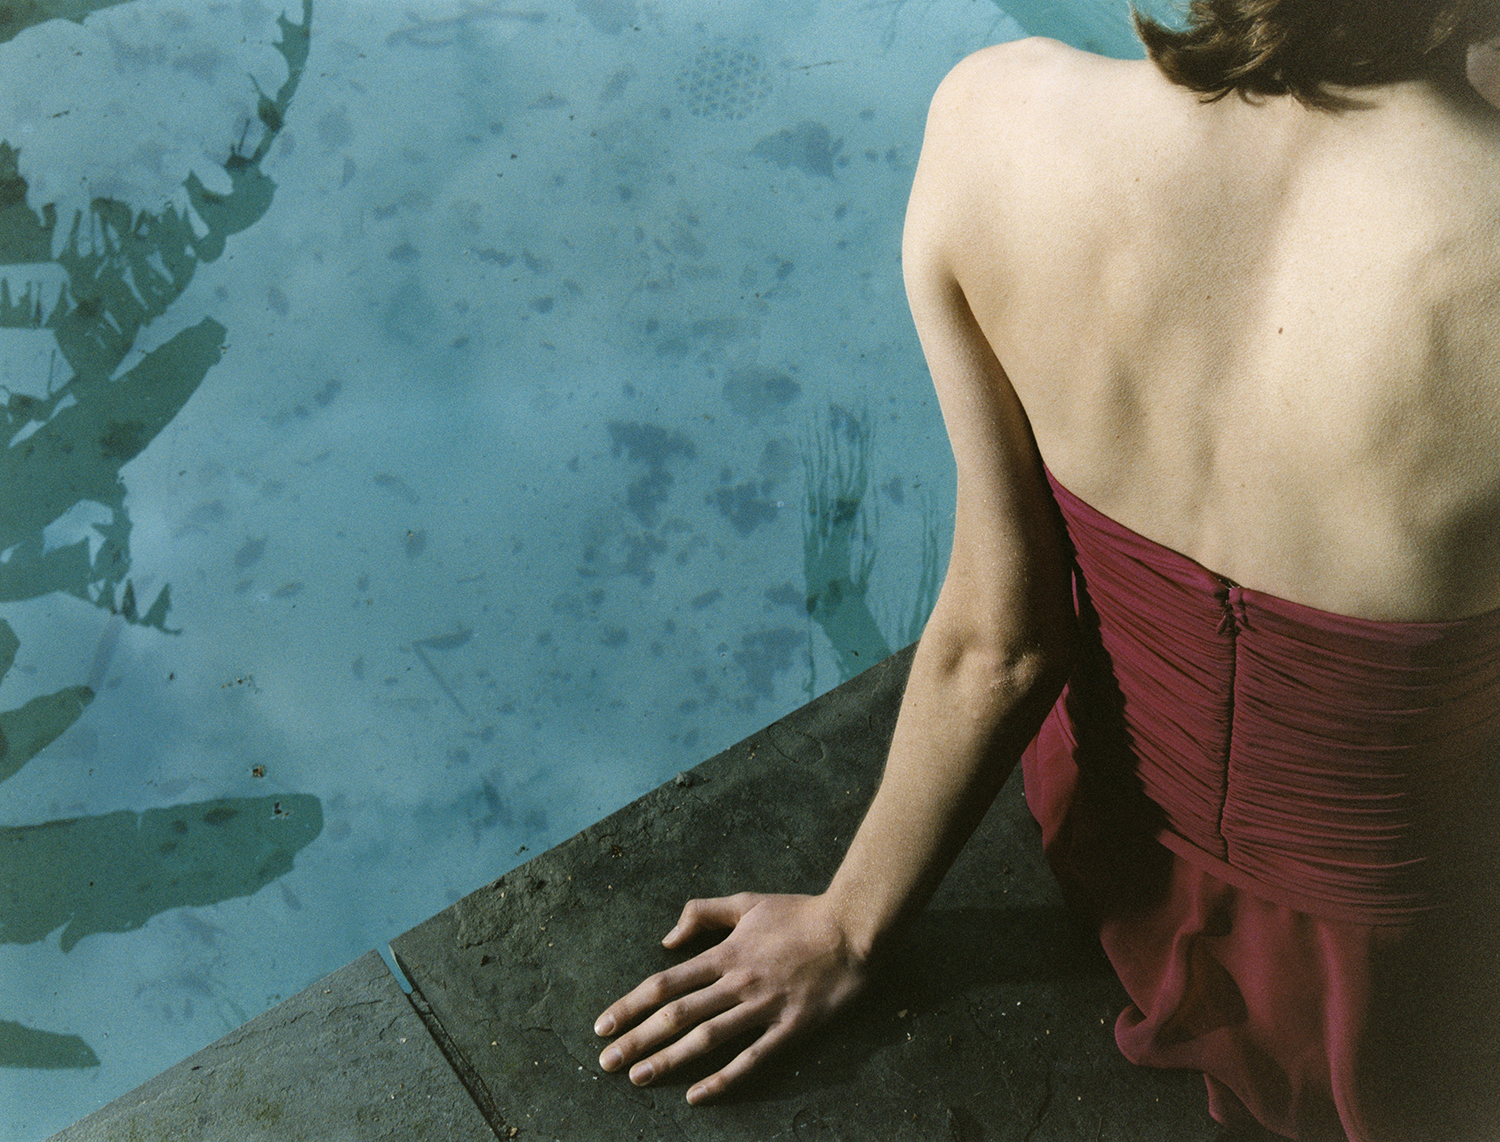 Woman in strapless dress poolside